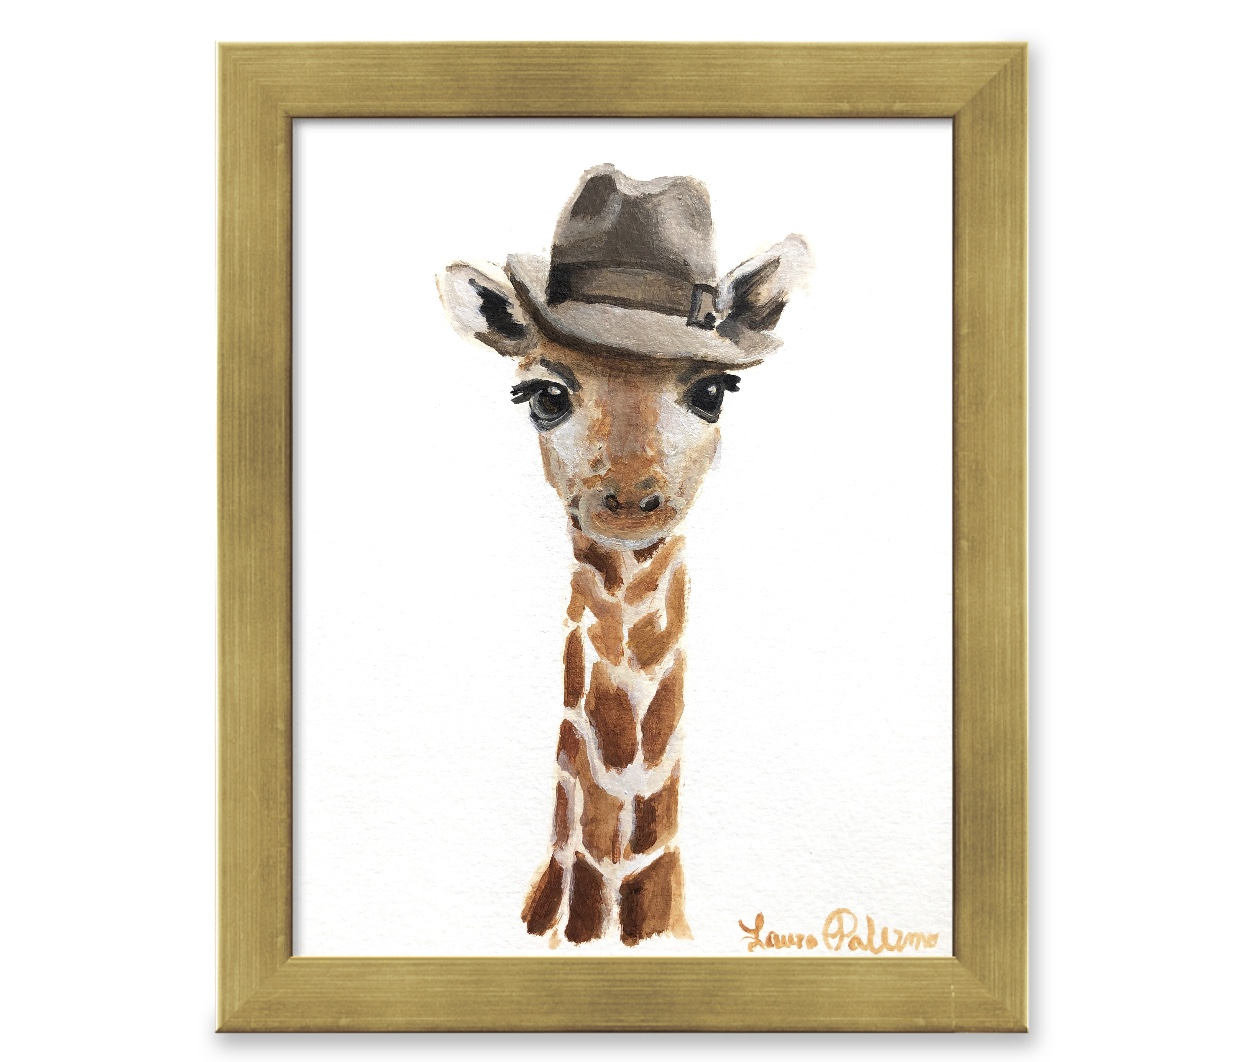 Giovanni the Giraffe